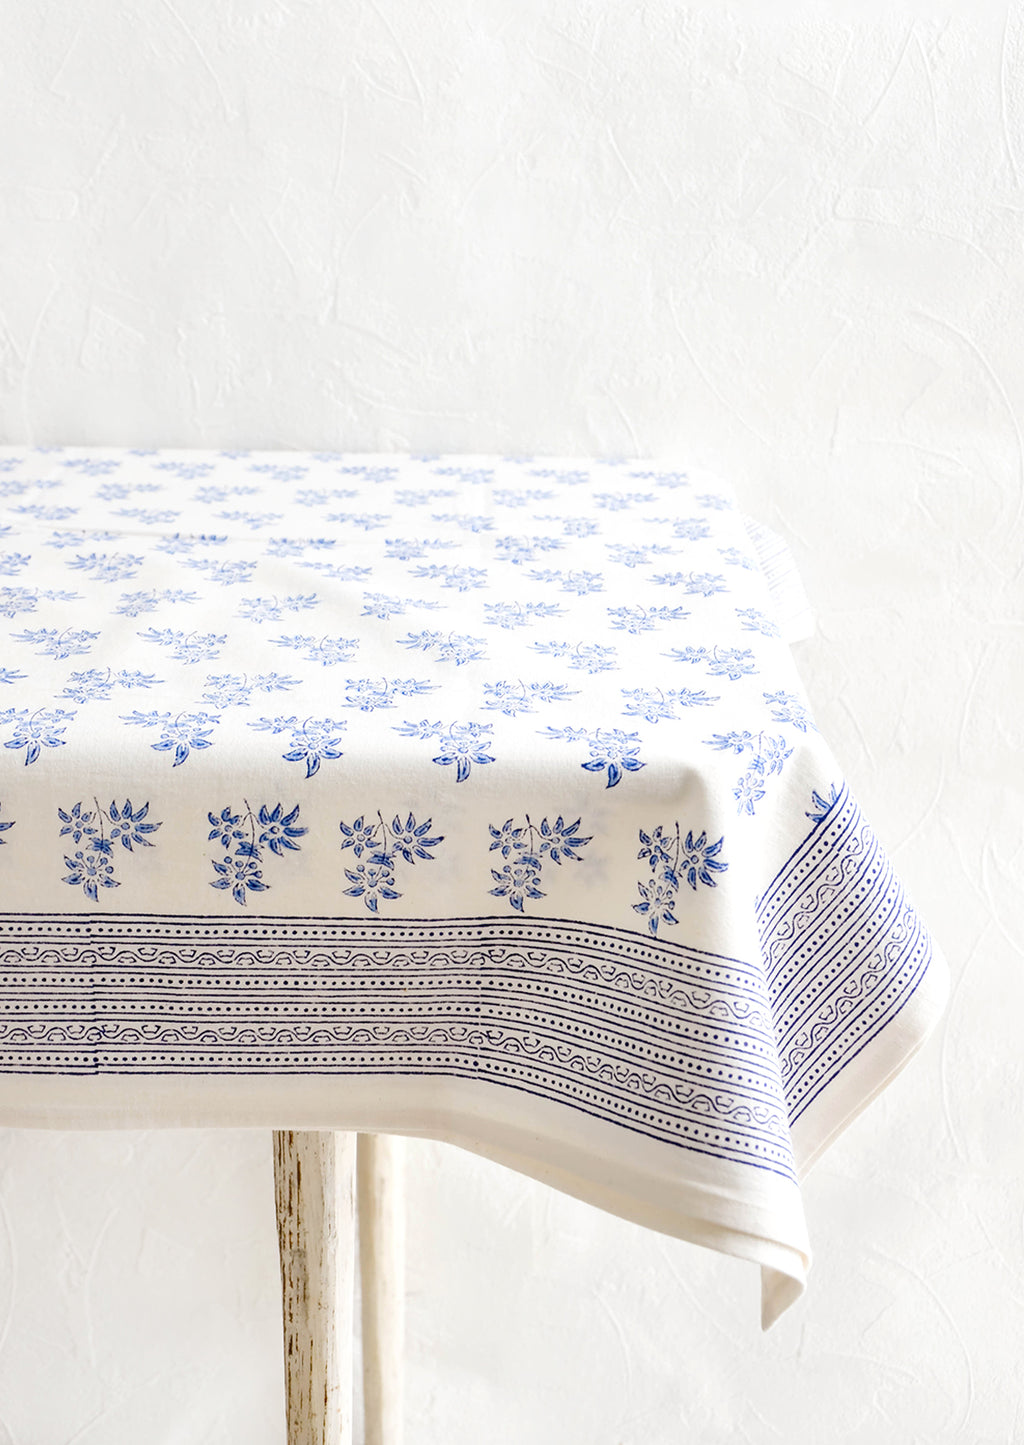 2: White cotton tablecloth with blue floral print and patterned border